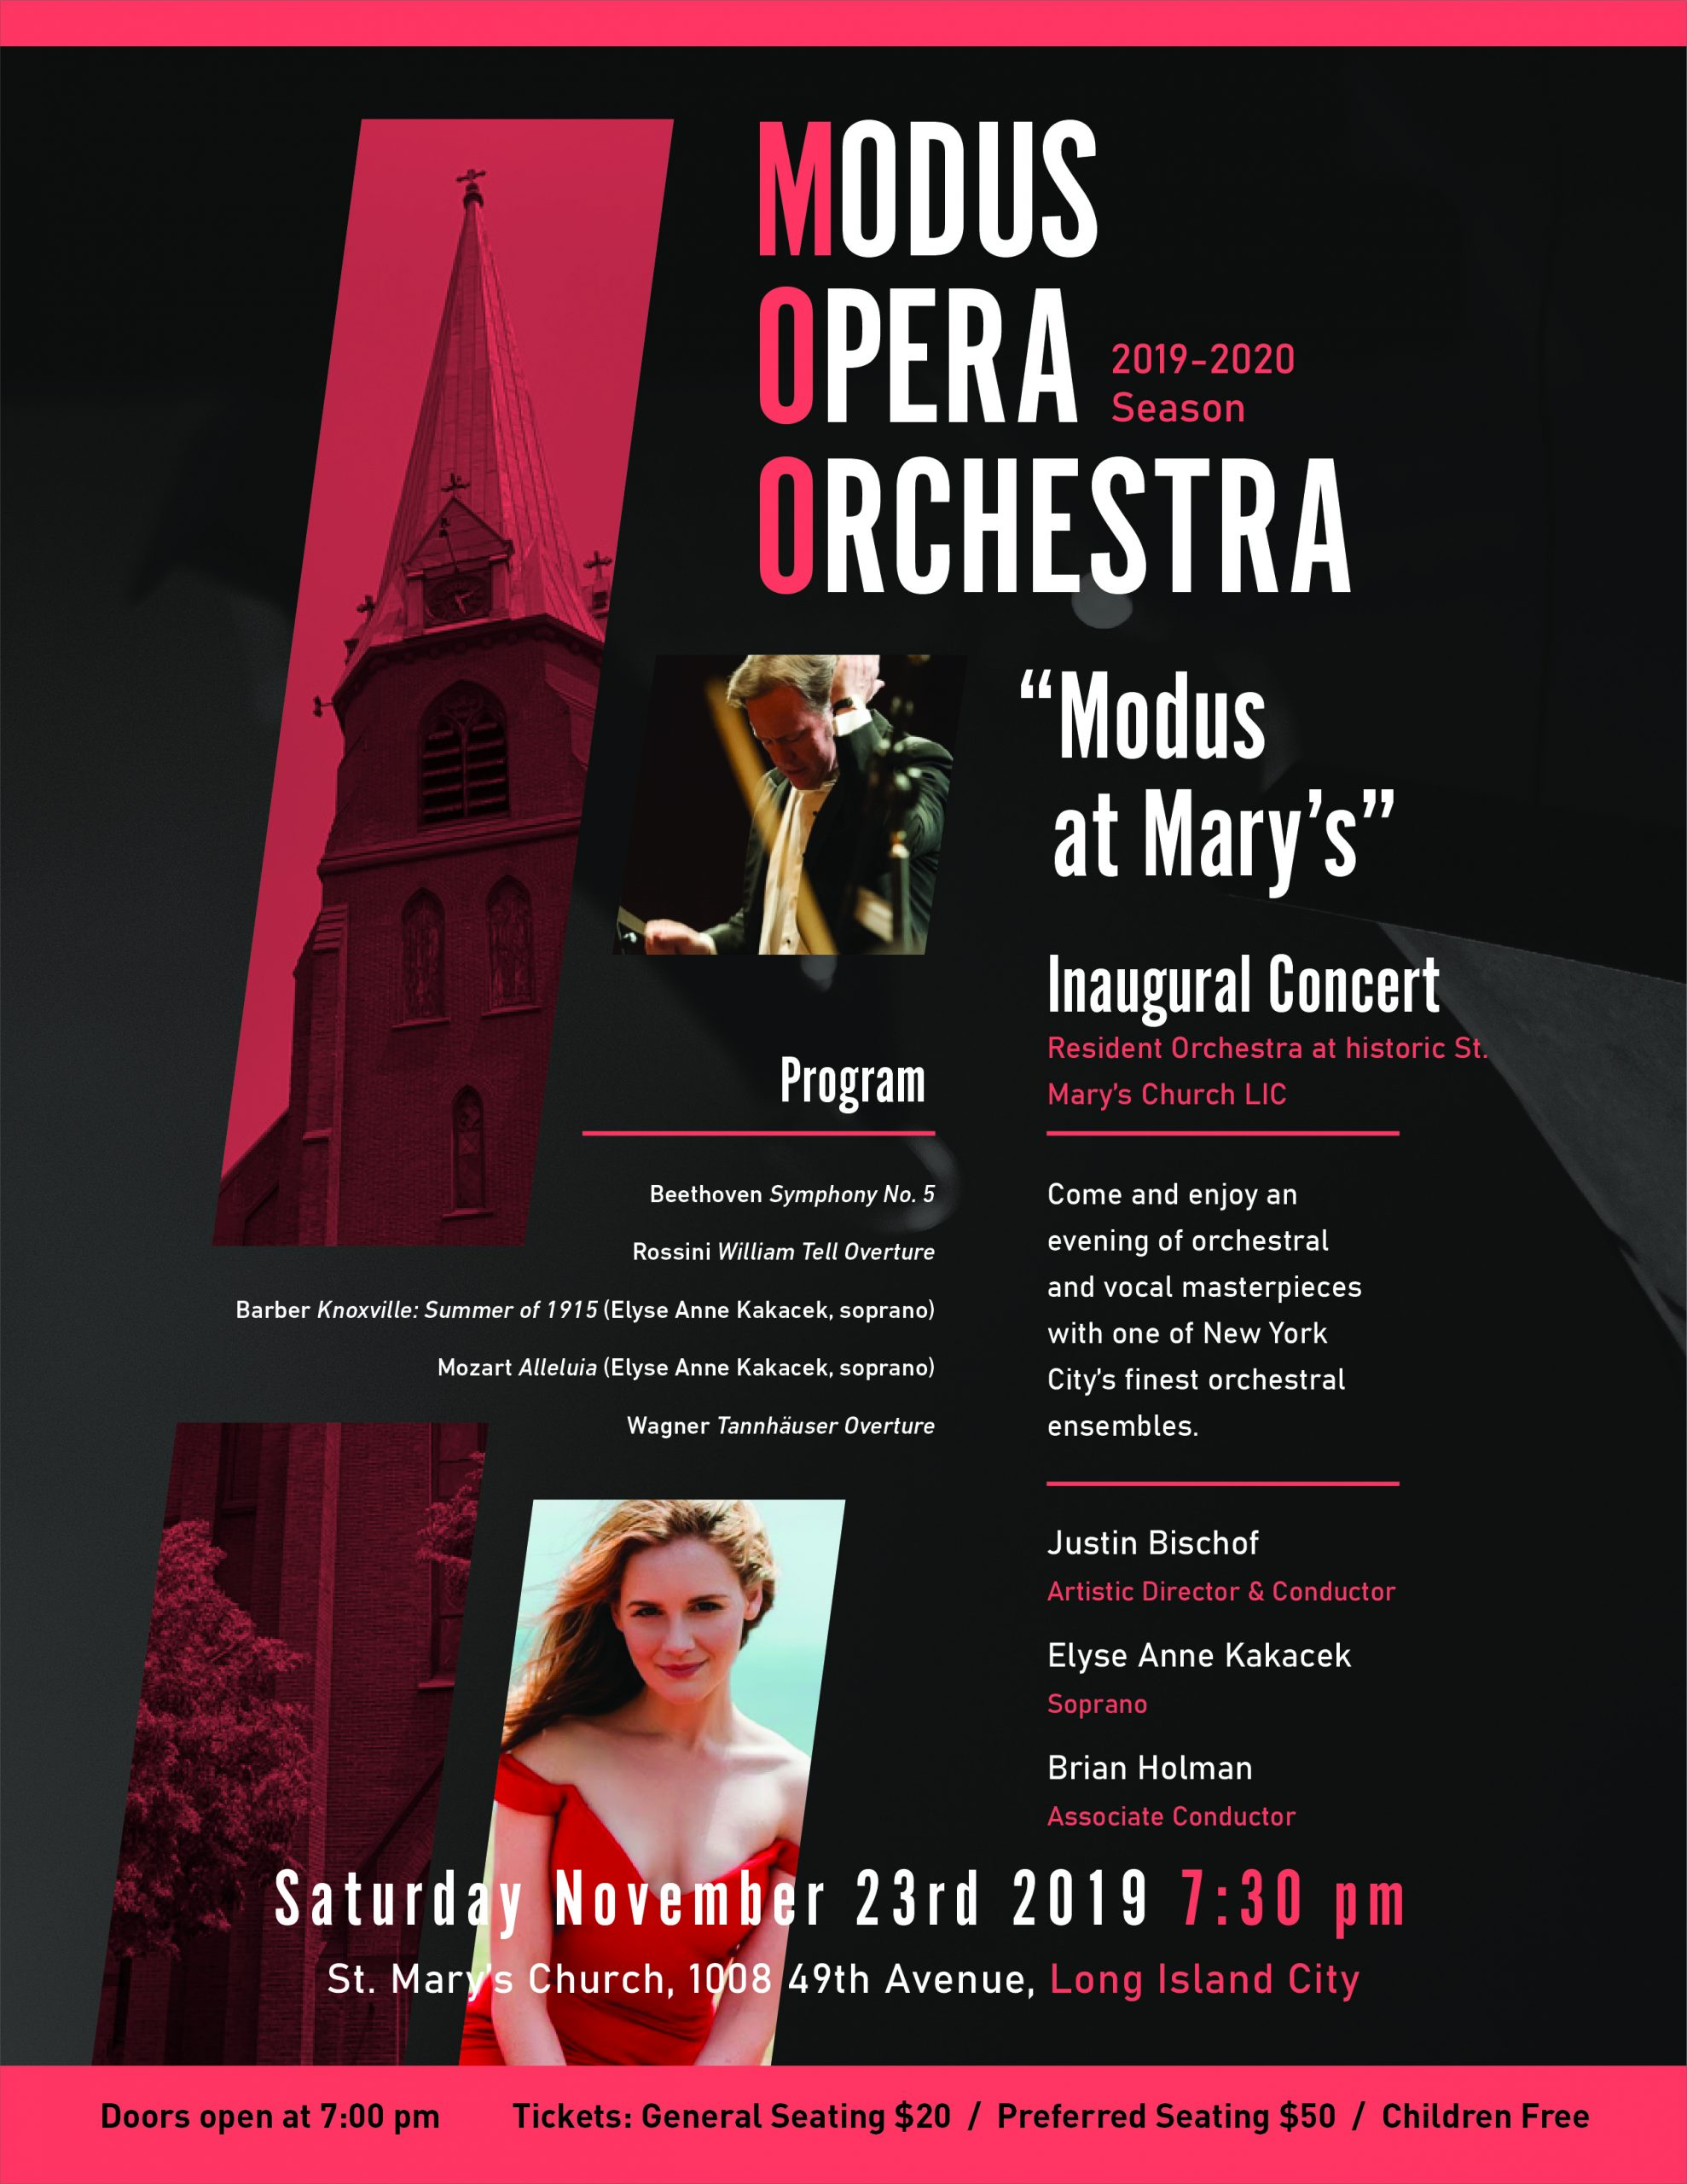 Not to be missed! The newly reorganized Modus Opera Orchestra will play Beethoven, Rossini, Barber, Mozart, and Wagner at St. Anne's Church, Long Island City on Saturday, November 23 at 7 pm.